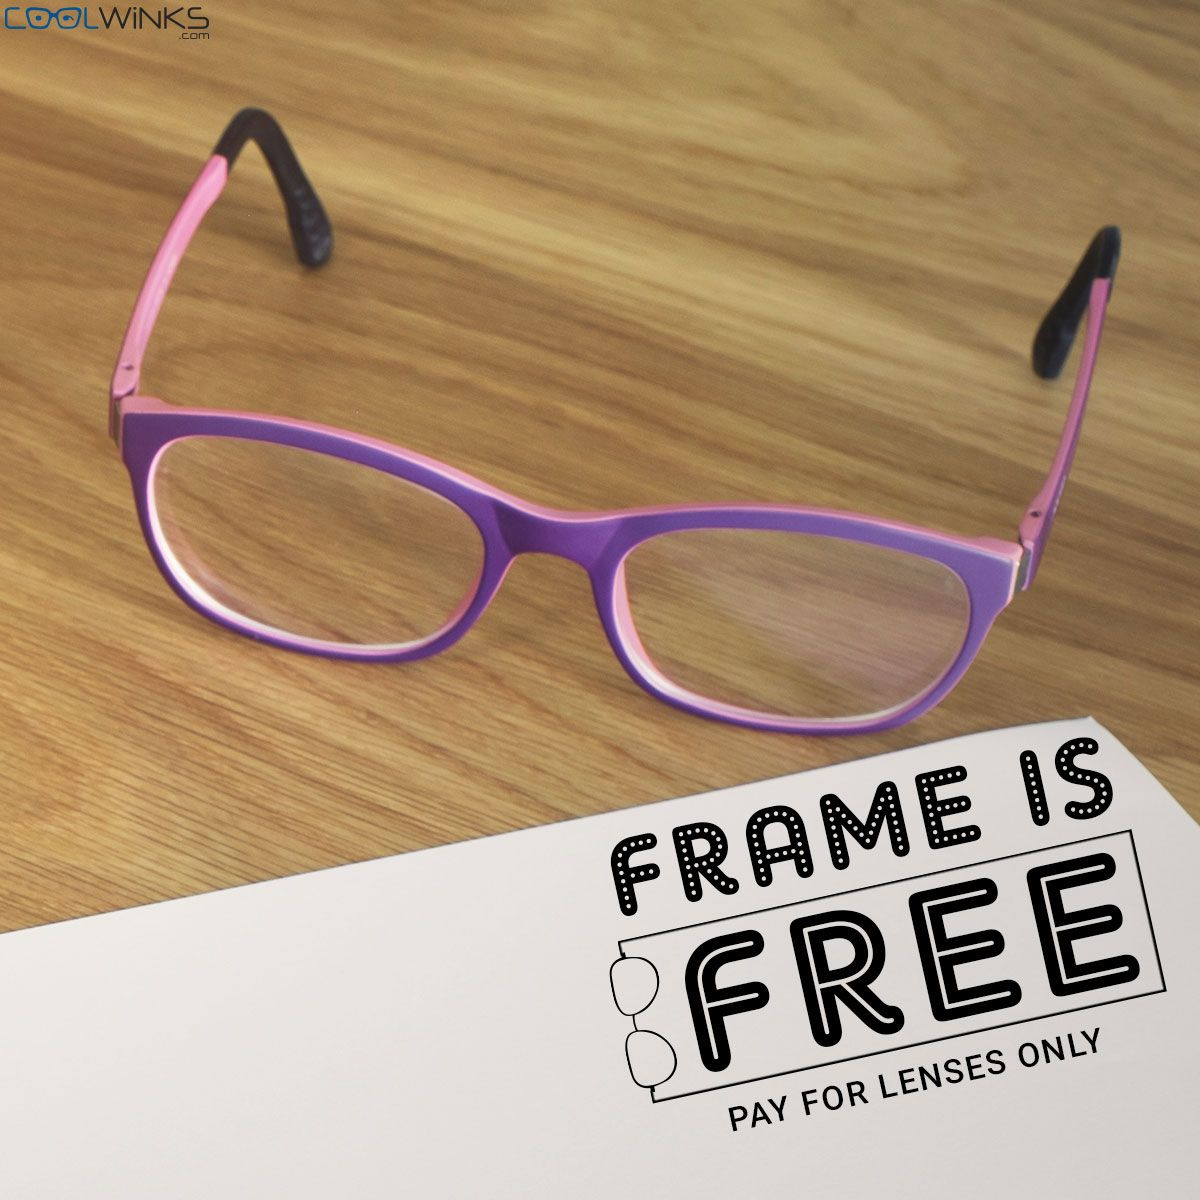 88ffbd6731 Get Extra Rs.700 CoolCash  Discount on the Hottest Collection of Eyeglasses   Coolwinks. Frame is FREE